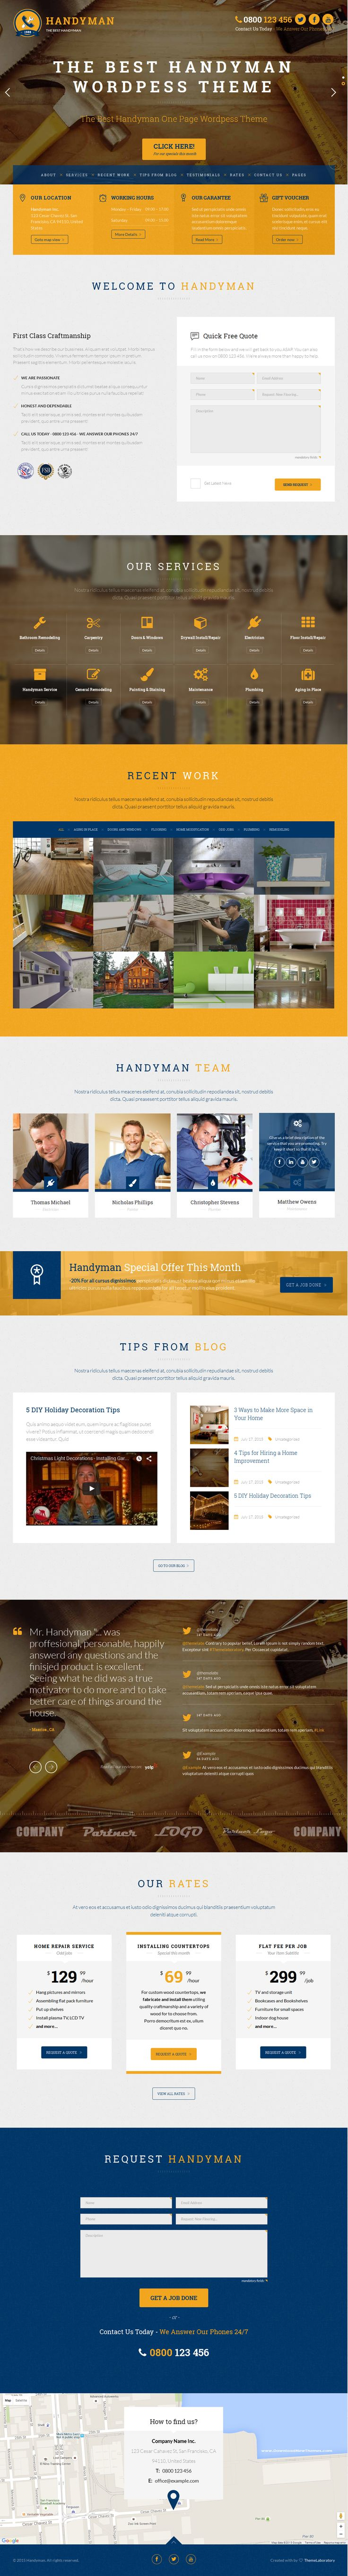 Handyman is popular One Page WordPress child theme for Layers. It is suitable for handyman, repairman, craftsman, plumber, electrician or any kind of service business websites. #website #design